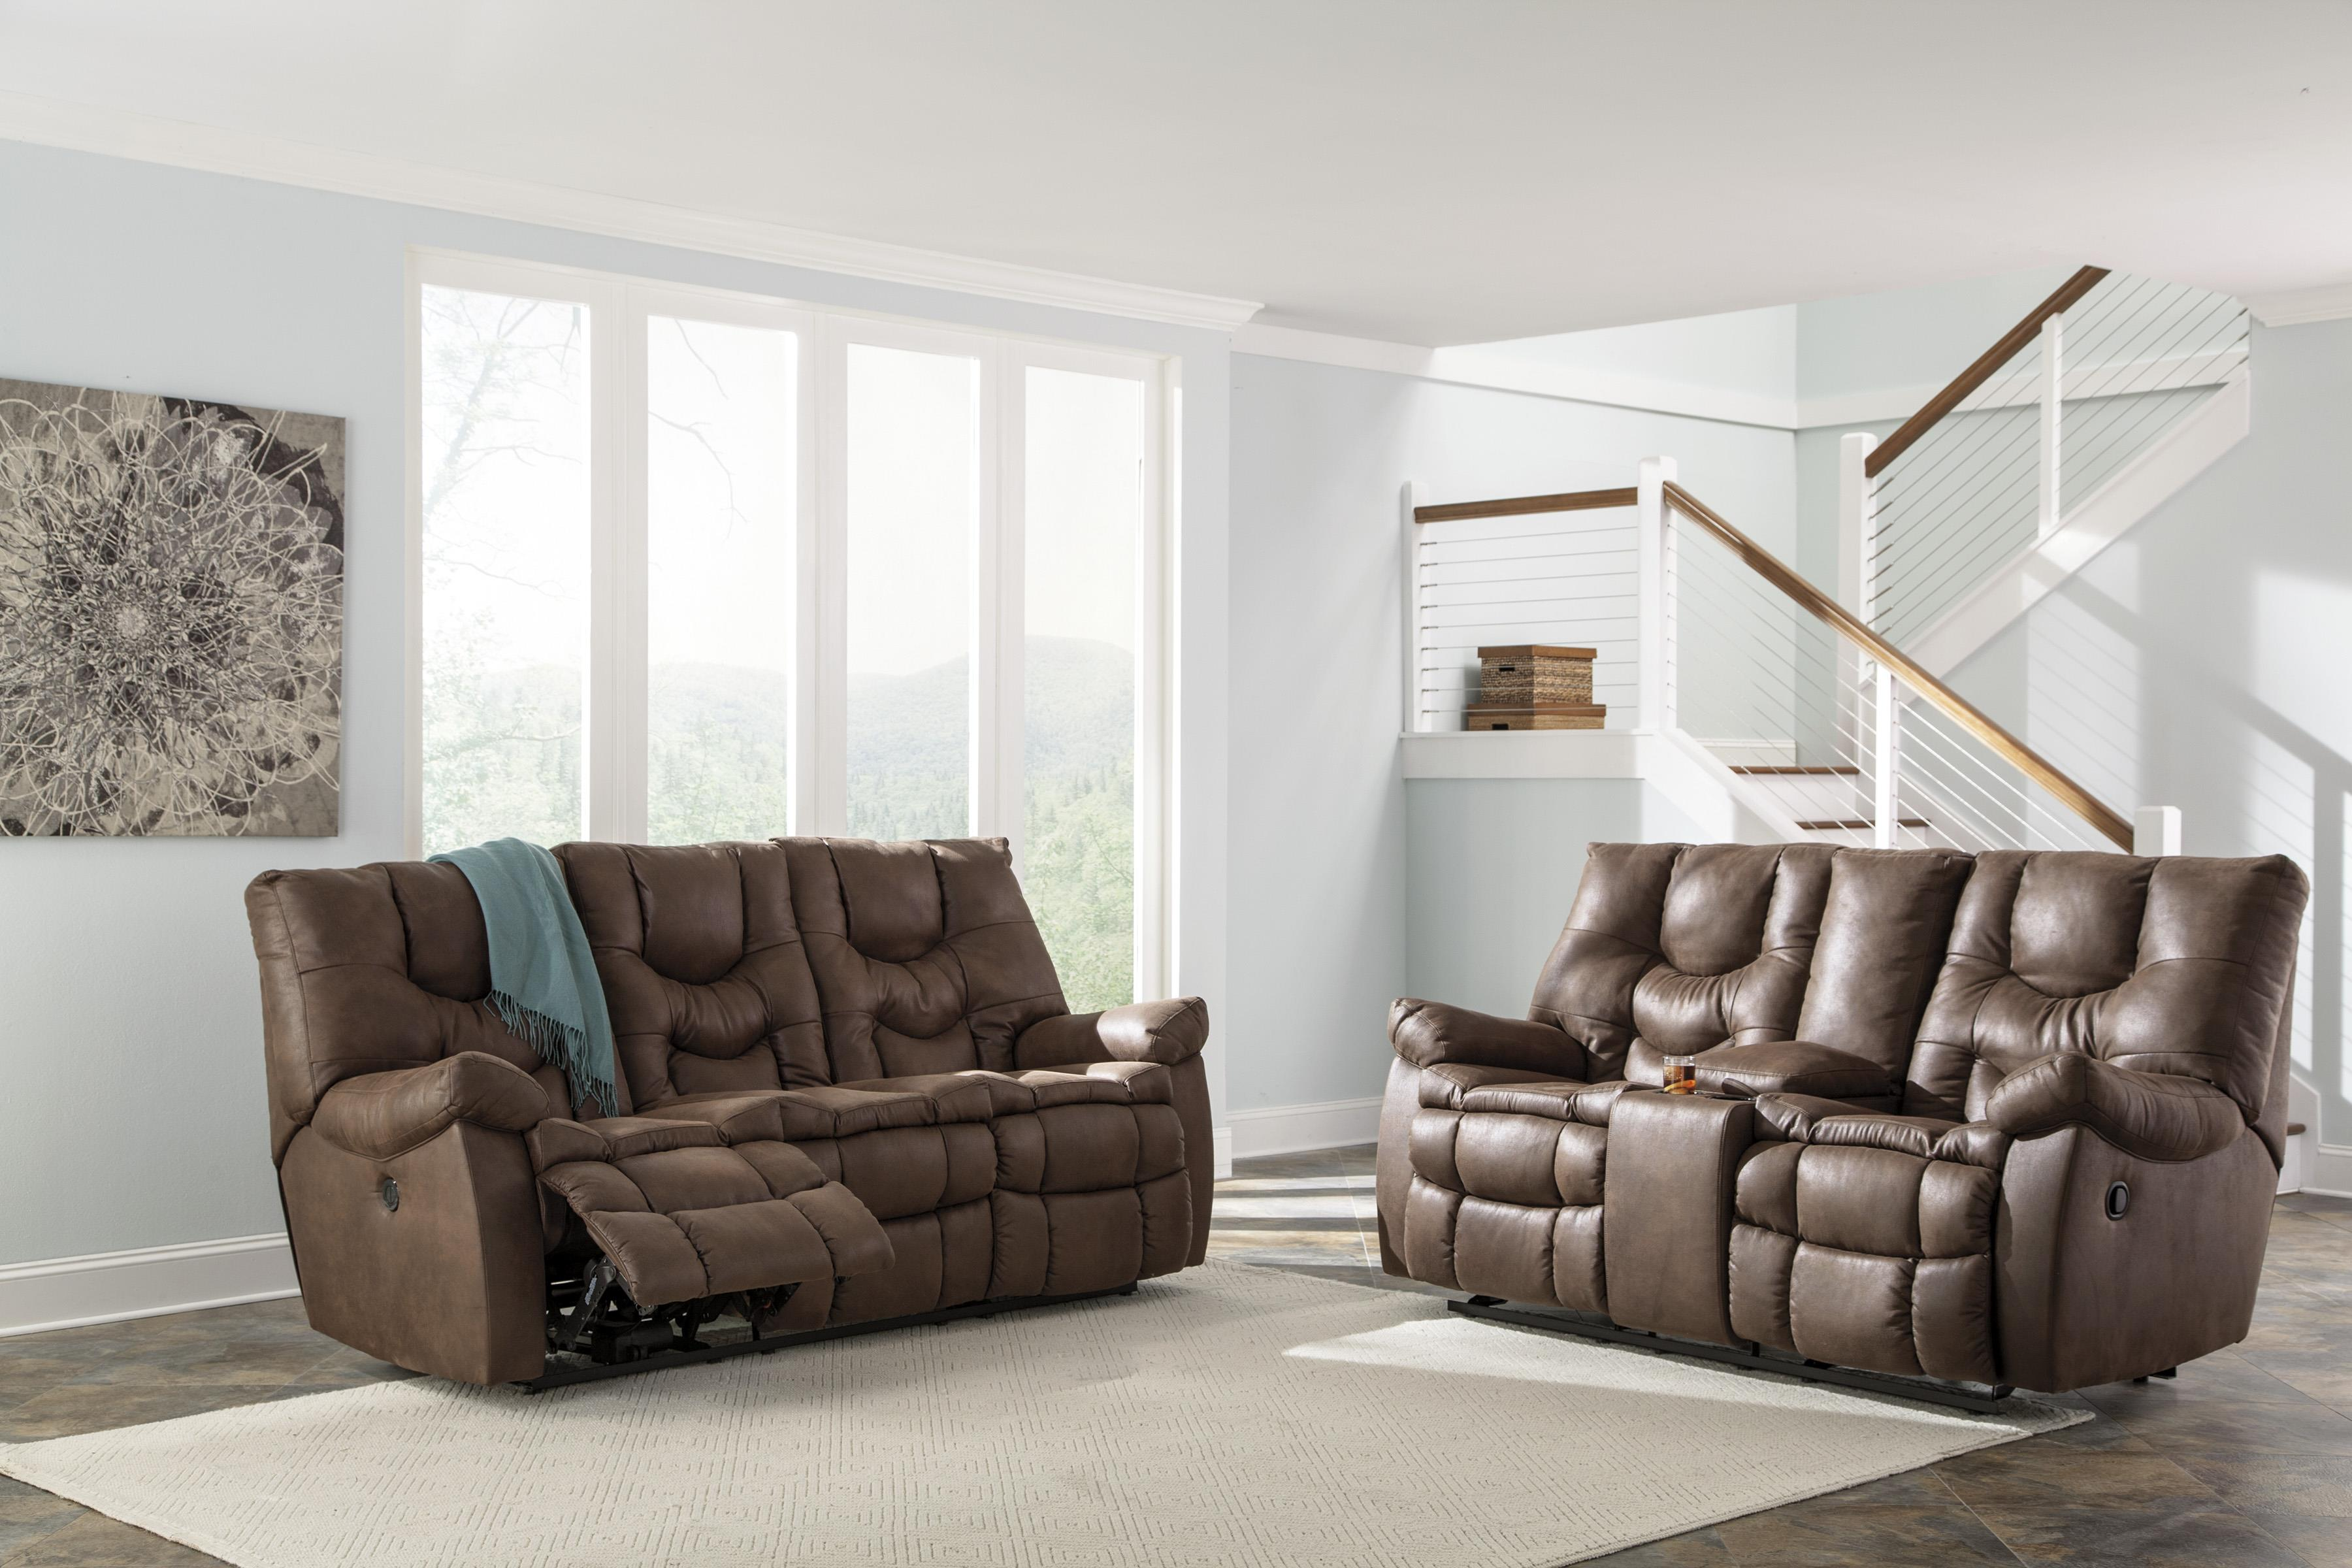 Benchcraft Burgett Reclining Living Room Group - Item Number: 92201 Living Room Group 2